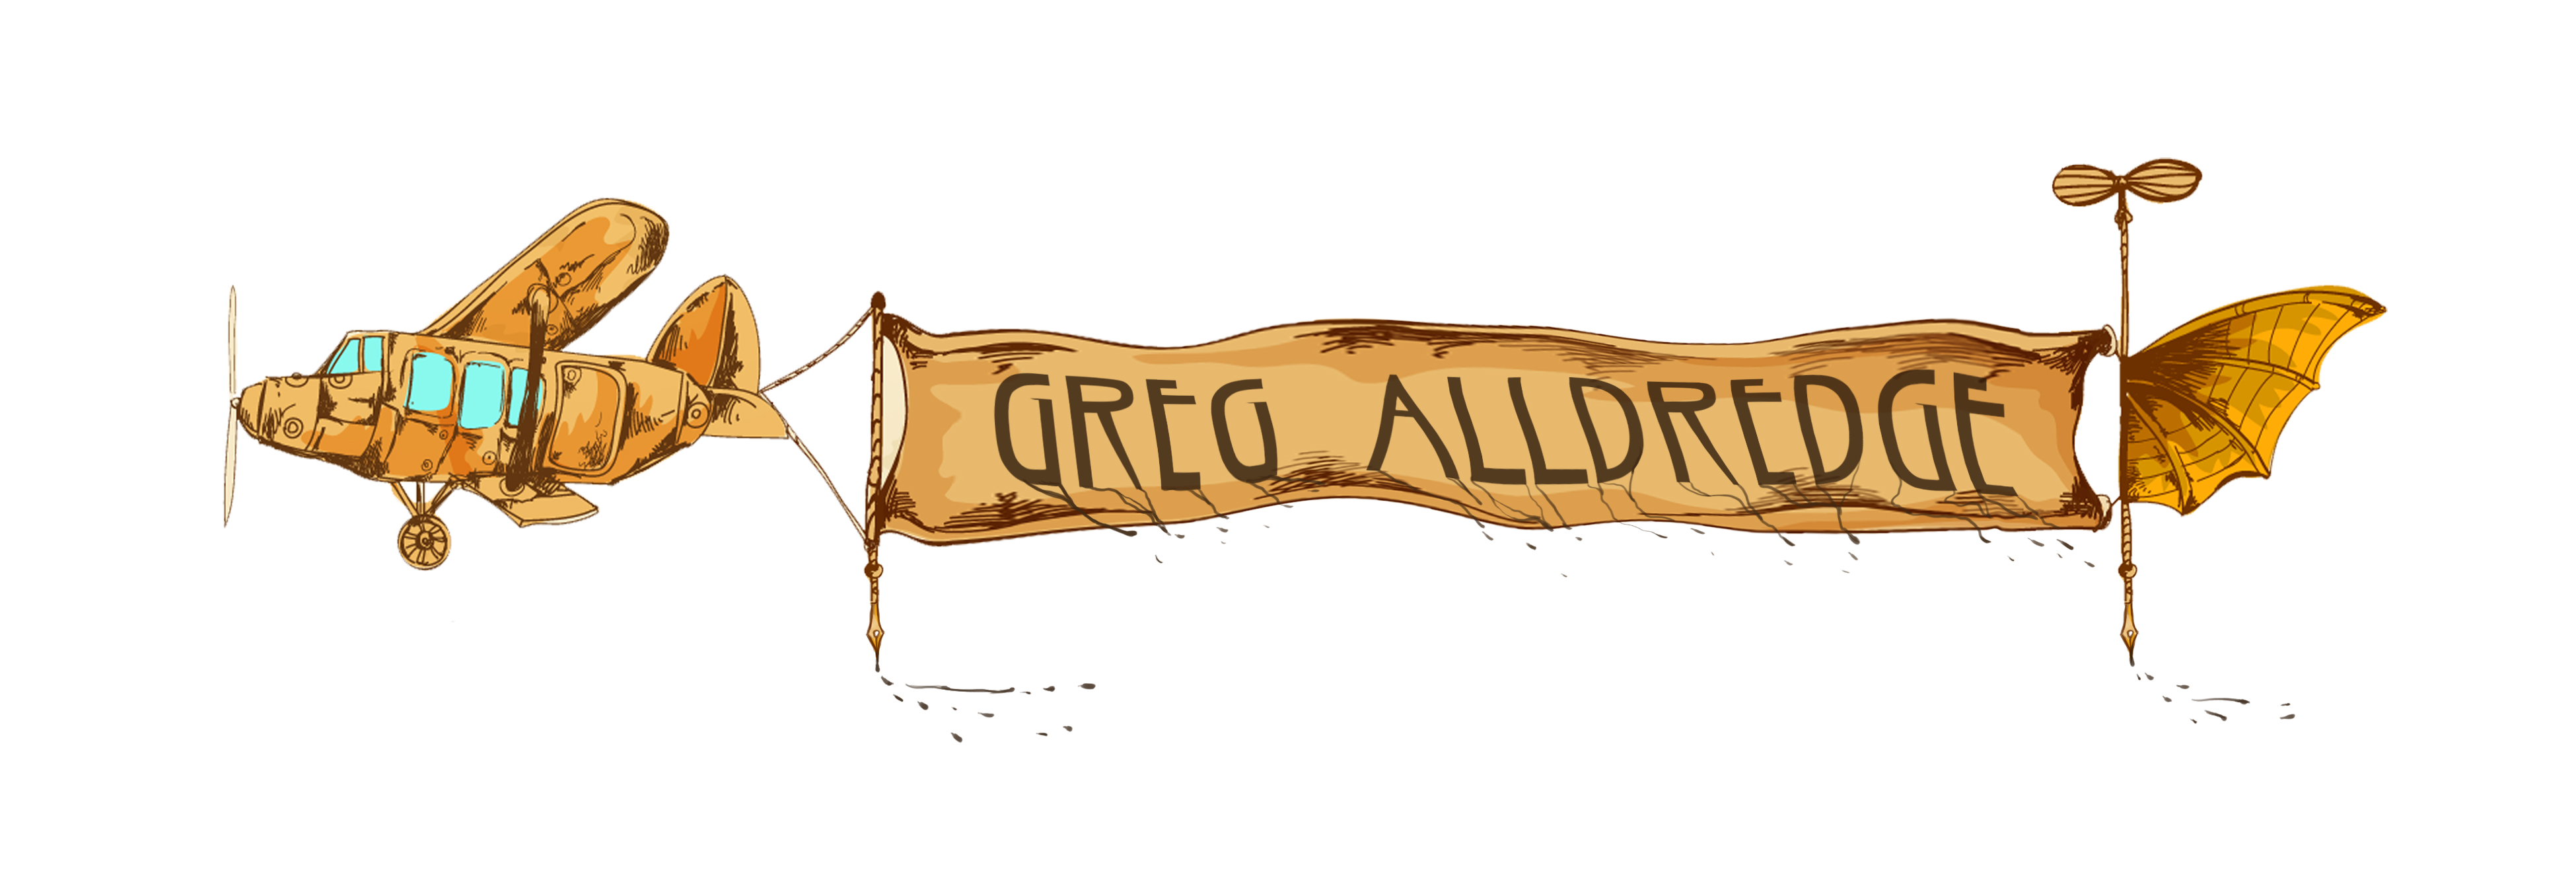 Greg Alldredge Logo